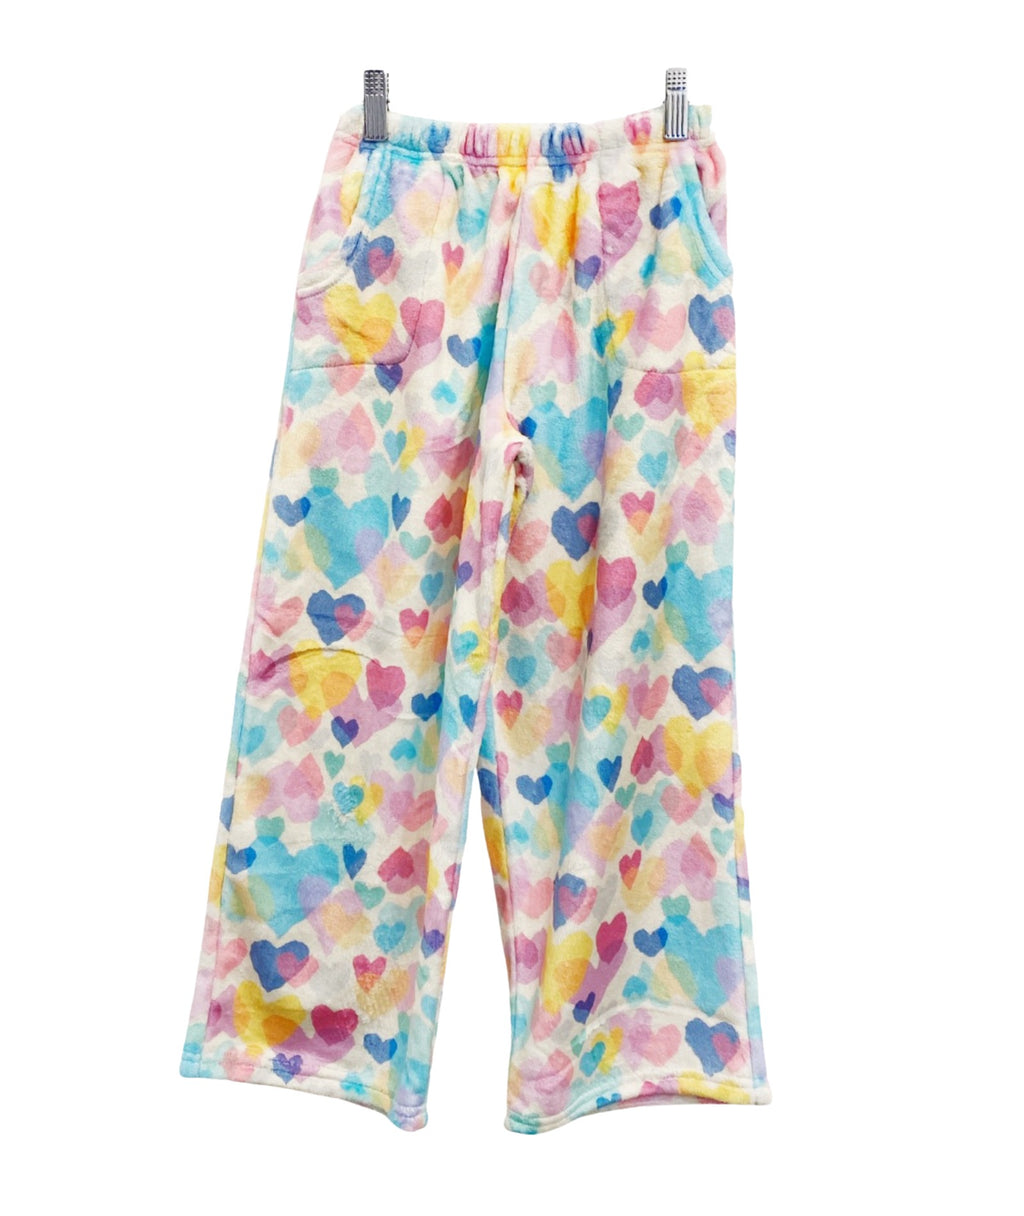 iScream Girls Pastel Hearts Plush Pants